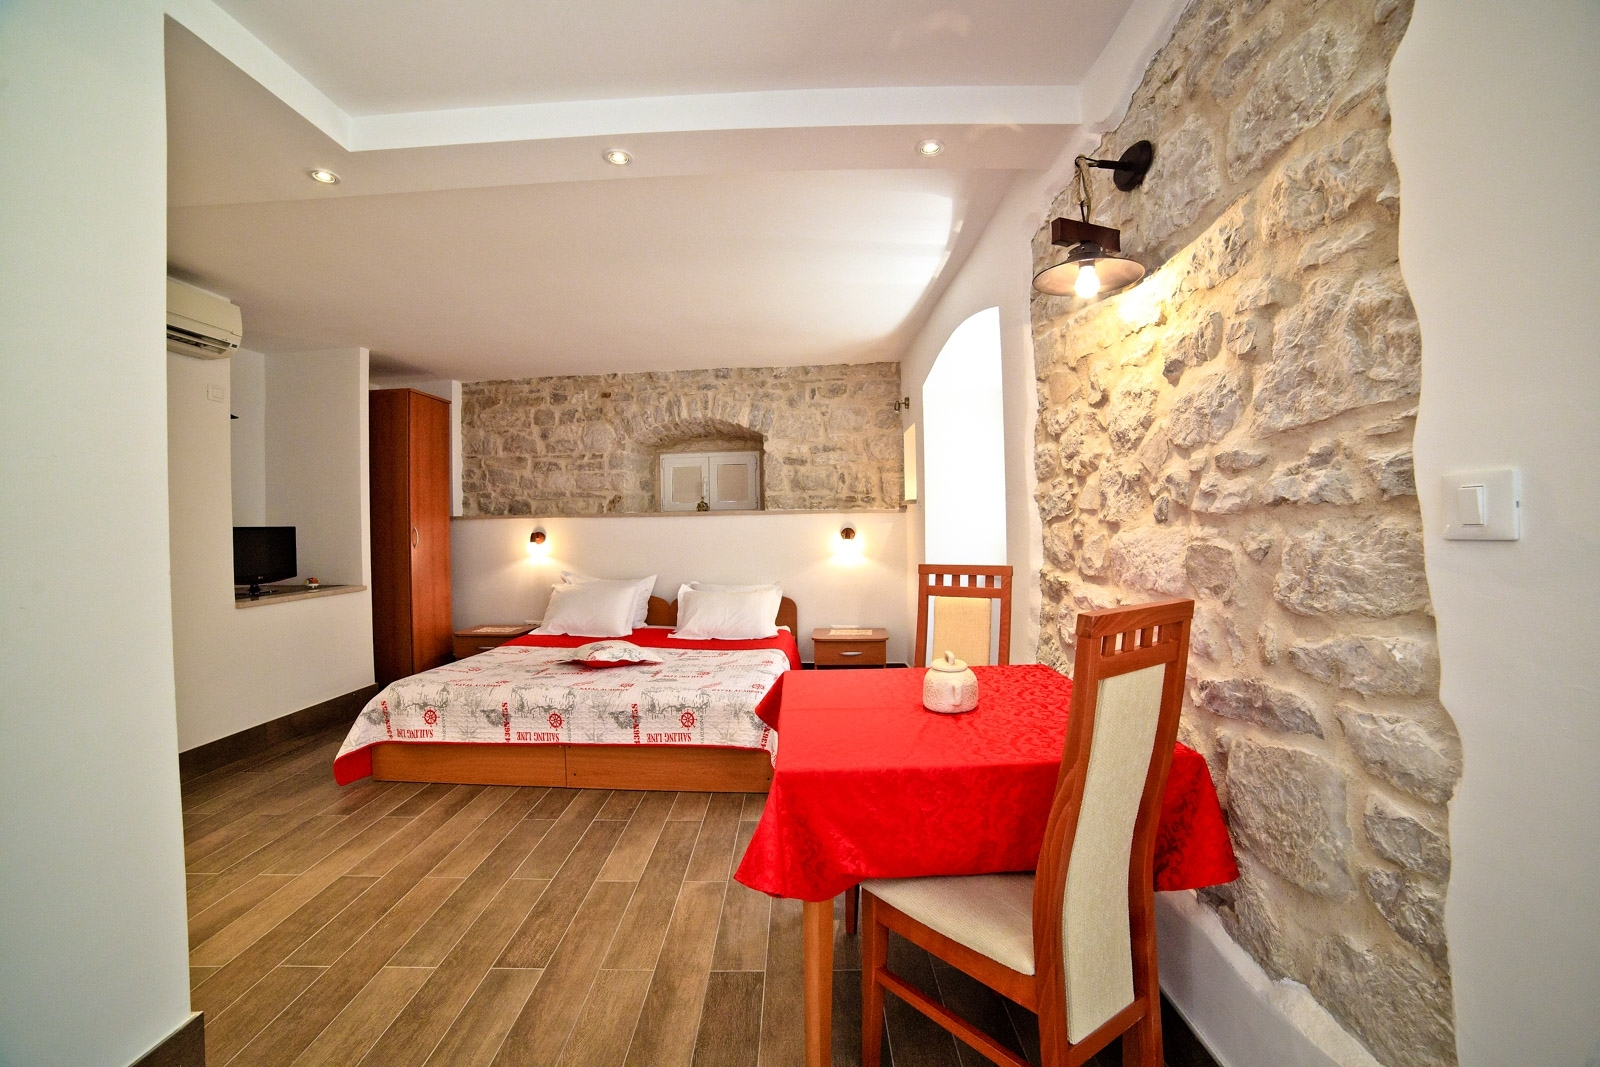 Garden Apartment Hotel In City Split Croatia pertaining to Garden Apartment Hotel Split